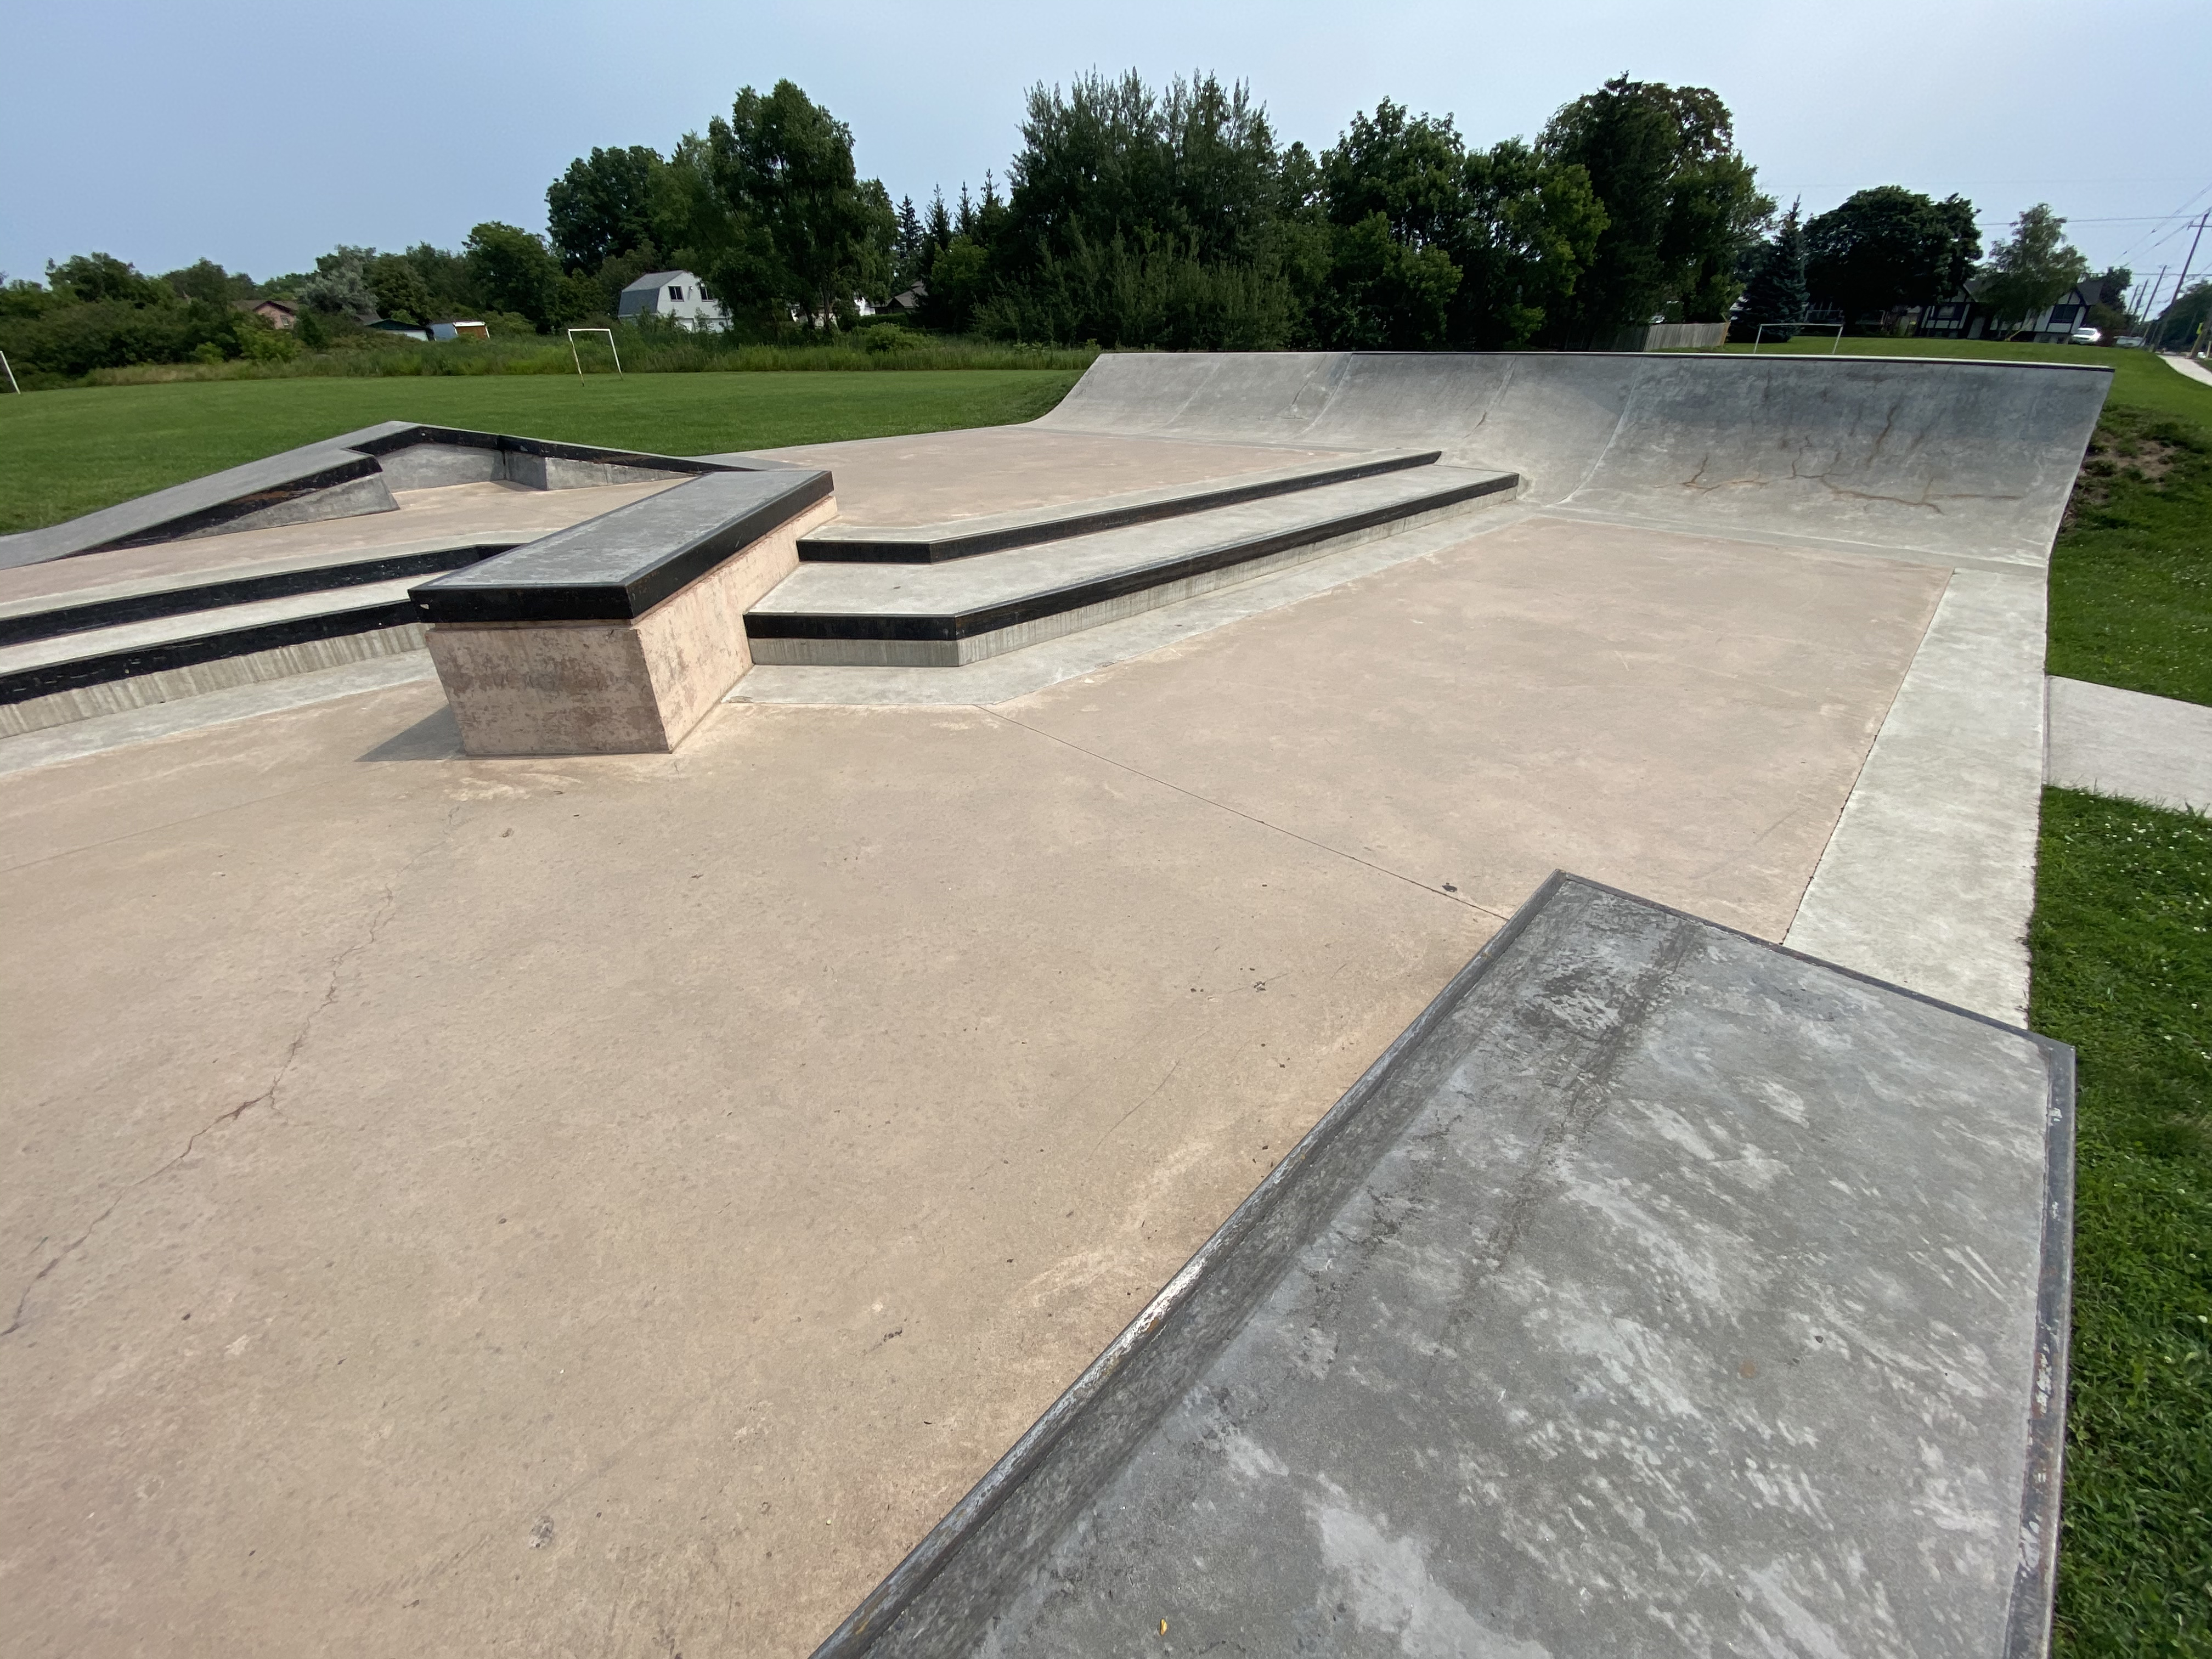 Caledonia Skatepark from the middle